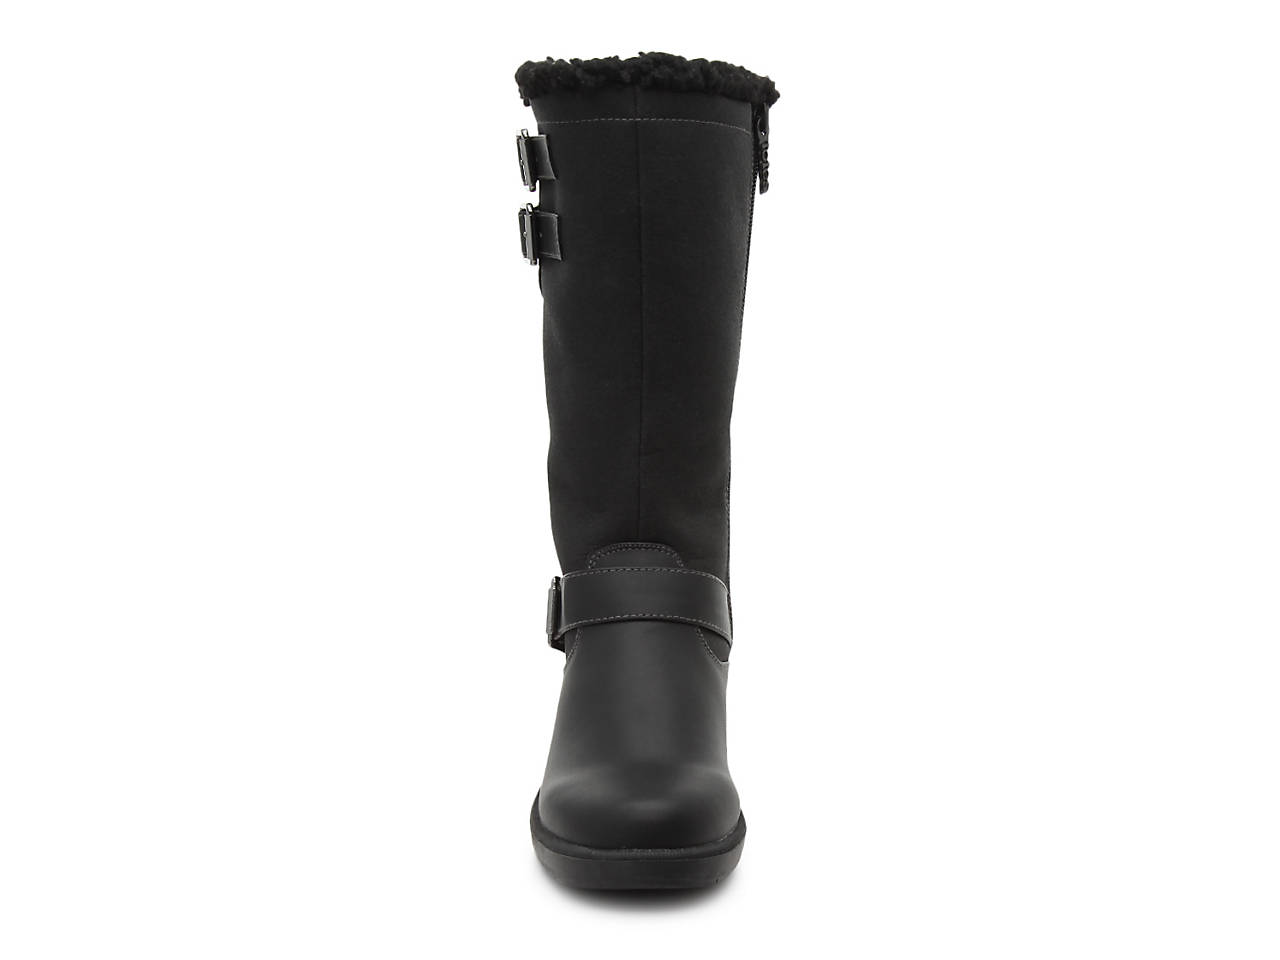 6a41afe6f6a2 Totes Julia Snow Boot Women s Shoes